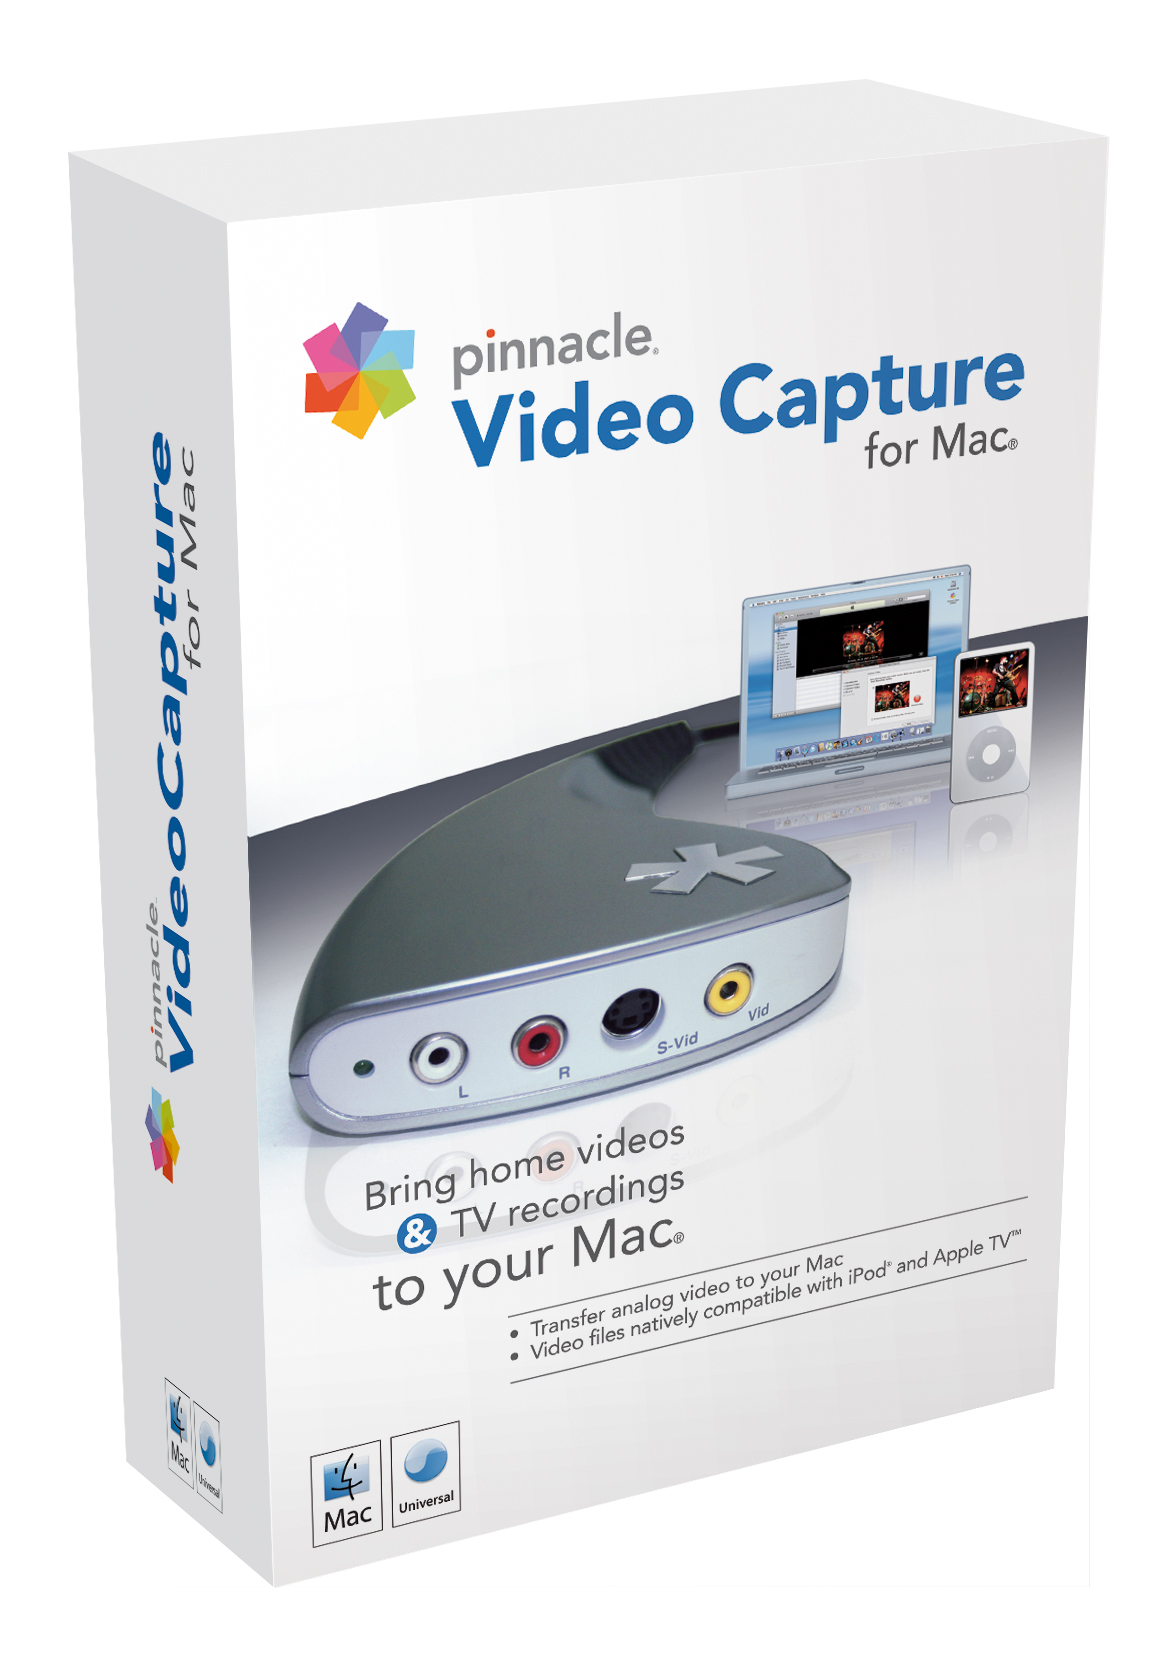 Pinnacle hat mit Video Capture for Mac eine Software-/Hardware-Lösung